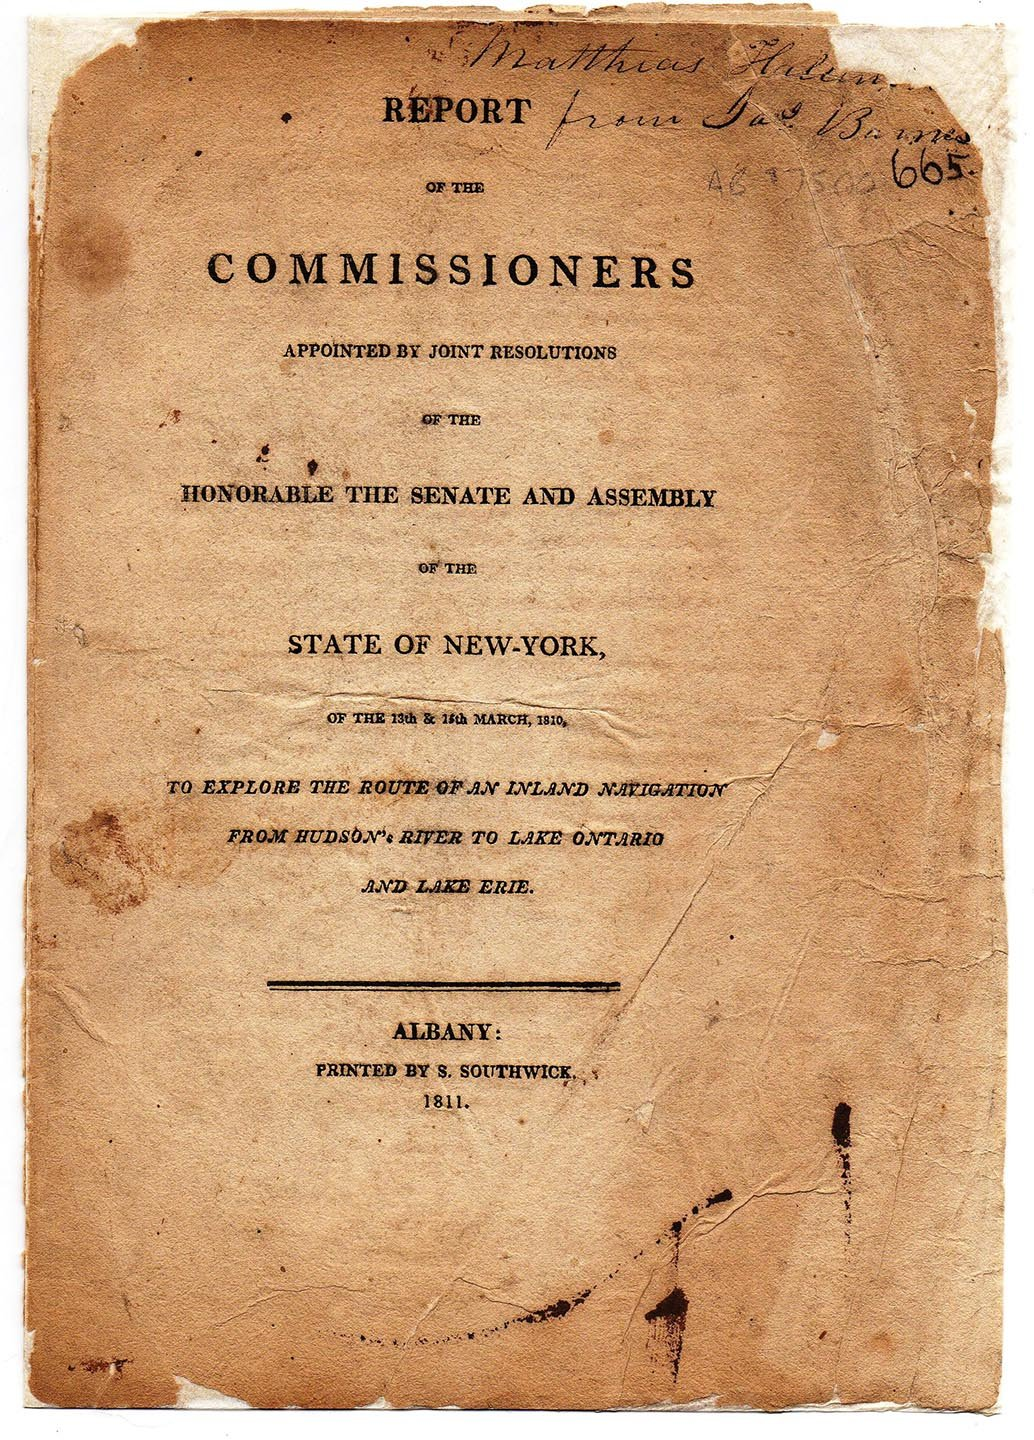 Report of the Commissioners Appointed by Joint Resolutions of the Honorable the Senate and Assembly of the State of New-York, of the 13th & 15th March, 1810, to Explore the Route of an Inland Navigation from Hudson's River to Lake Ontario and Lake Erie